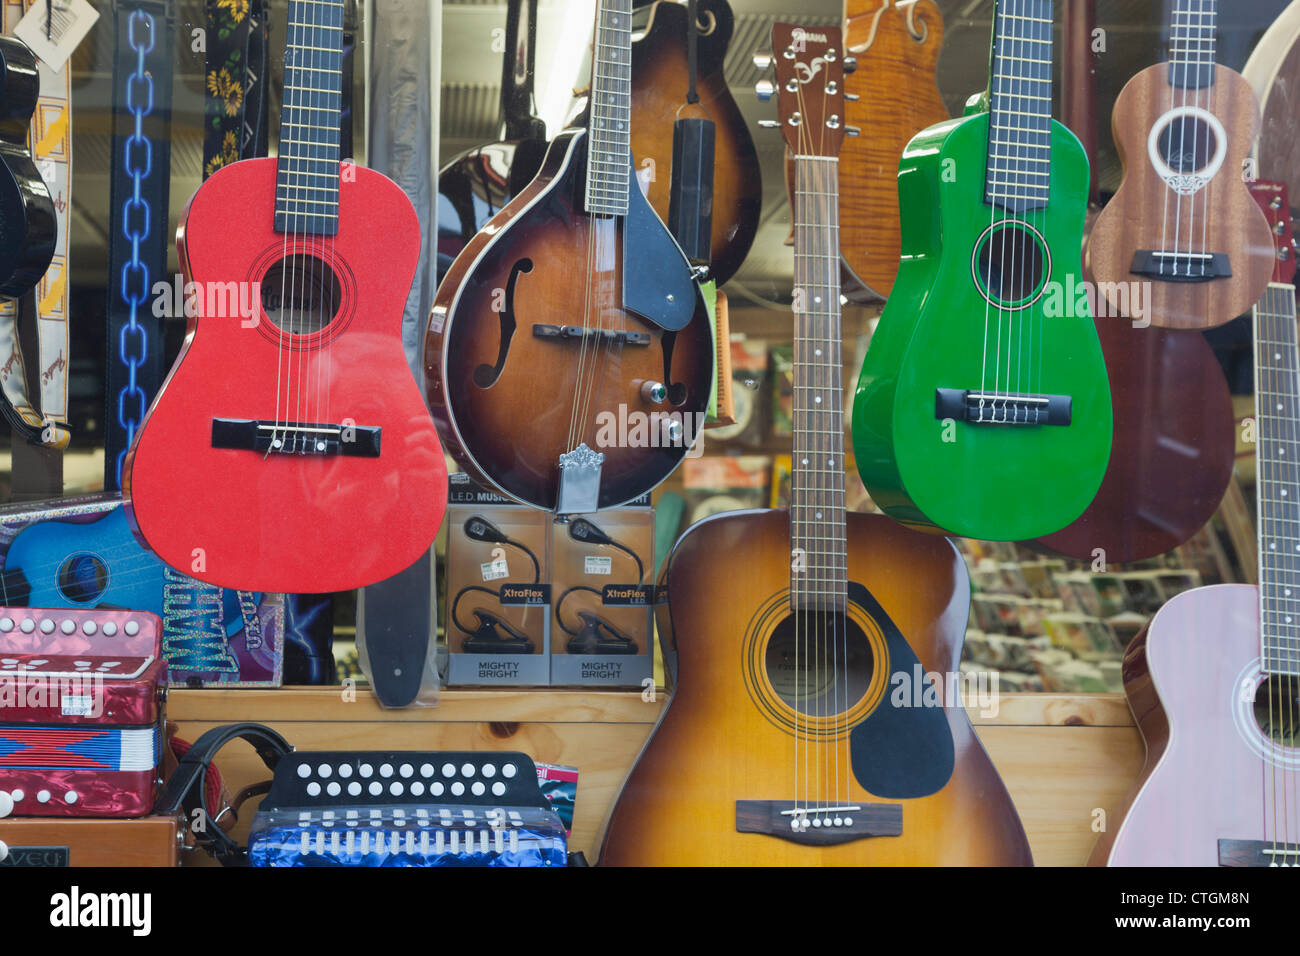 Killarney, County Kerry, Ireland. Stringed instruments for sale in shop window. Guitars, mandolins, ukuleles. - Stock Image